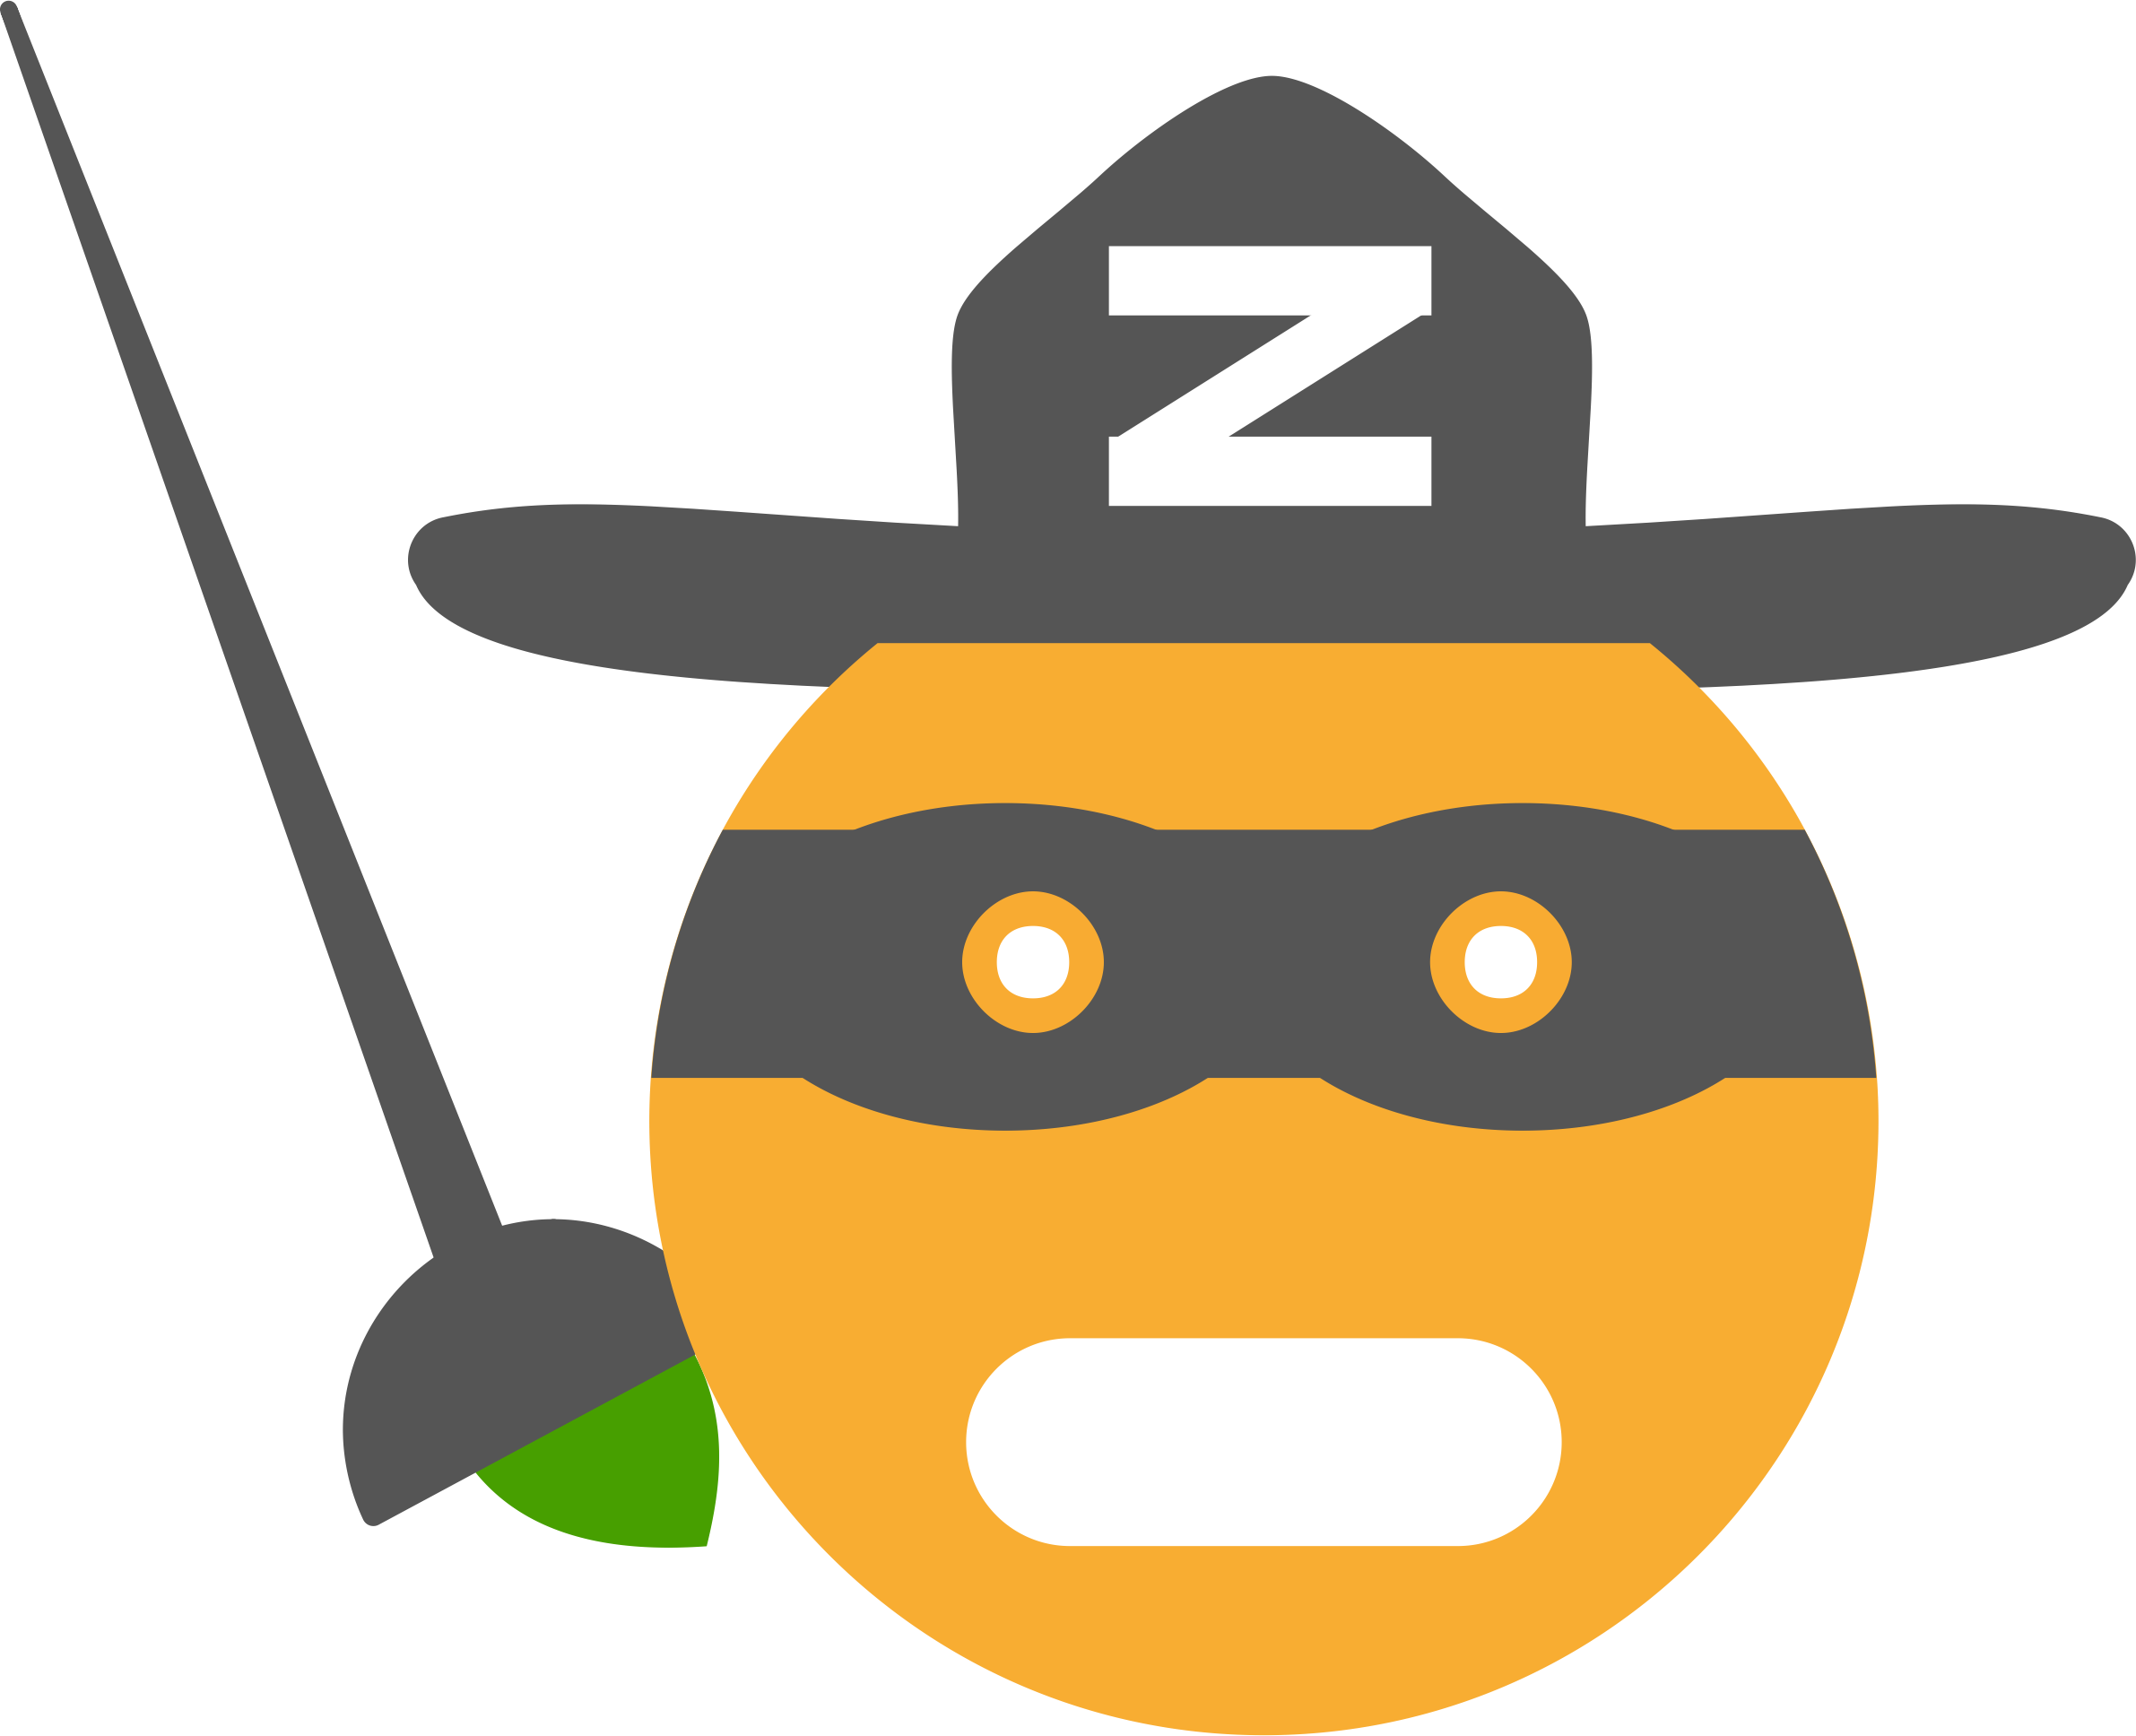 Smiley Clem Zorro by Justin Ternet